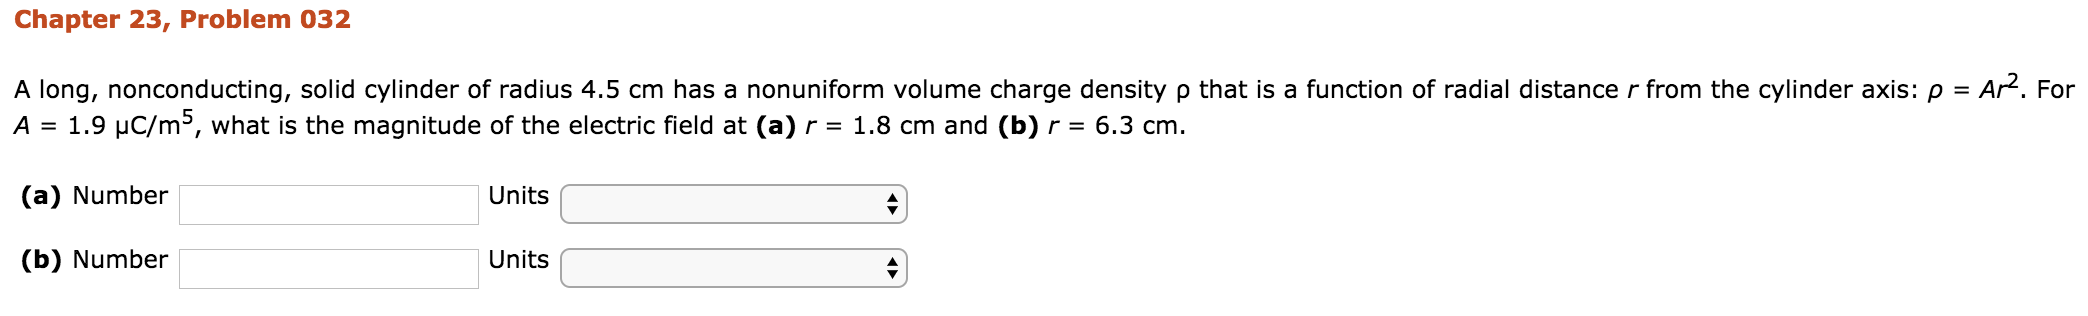 Chapter 23, Problem 032 that is a function of radial distance r from the cylinder axis: ρ = AP. For A long, nonconducting, solid cylinder of radius 4.5 cm has a nonuniform volume charge density A 1.9 uC/m5, what is the magnitude of the electric field at (a)r 1.8 cm and (b)r- 6.3 cm (a) Number (b) Number Units Units